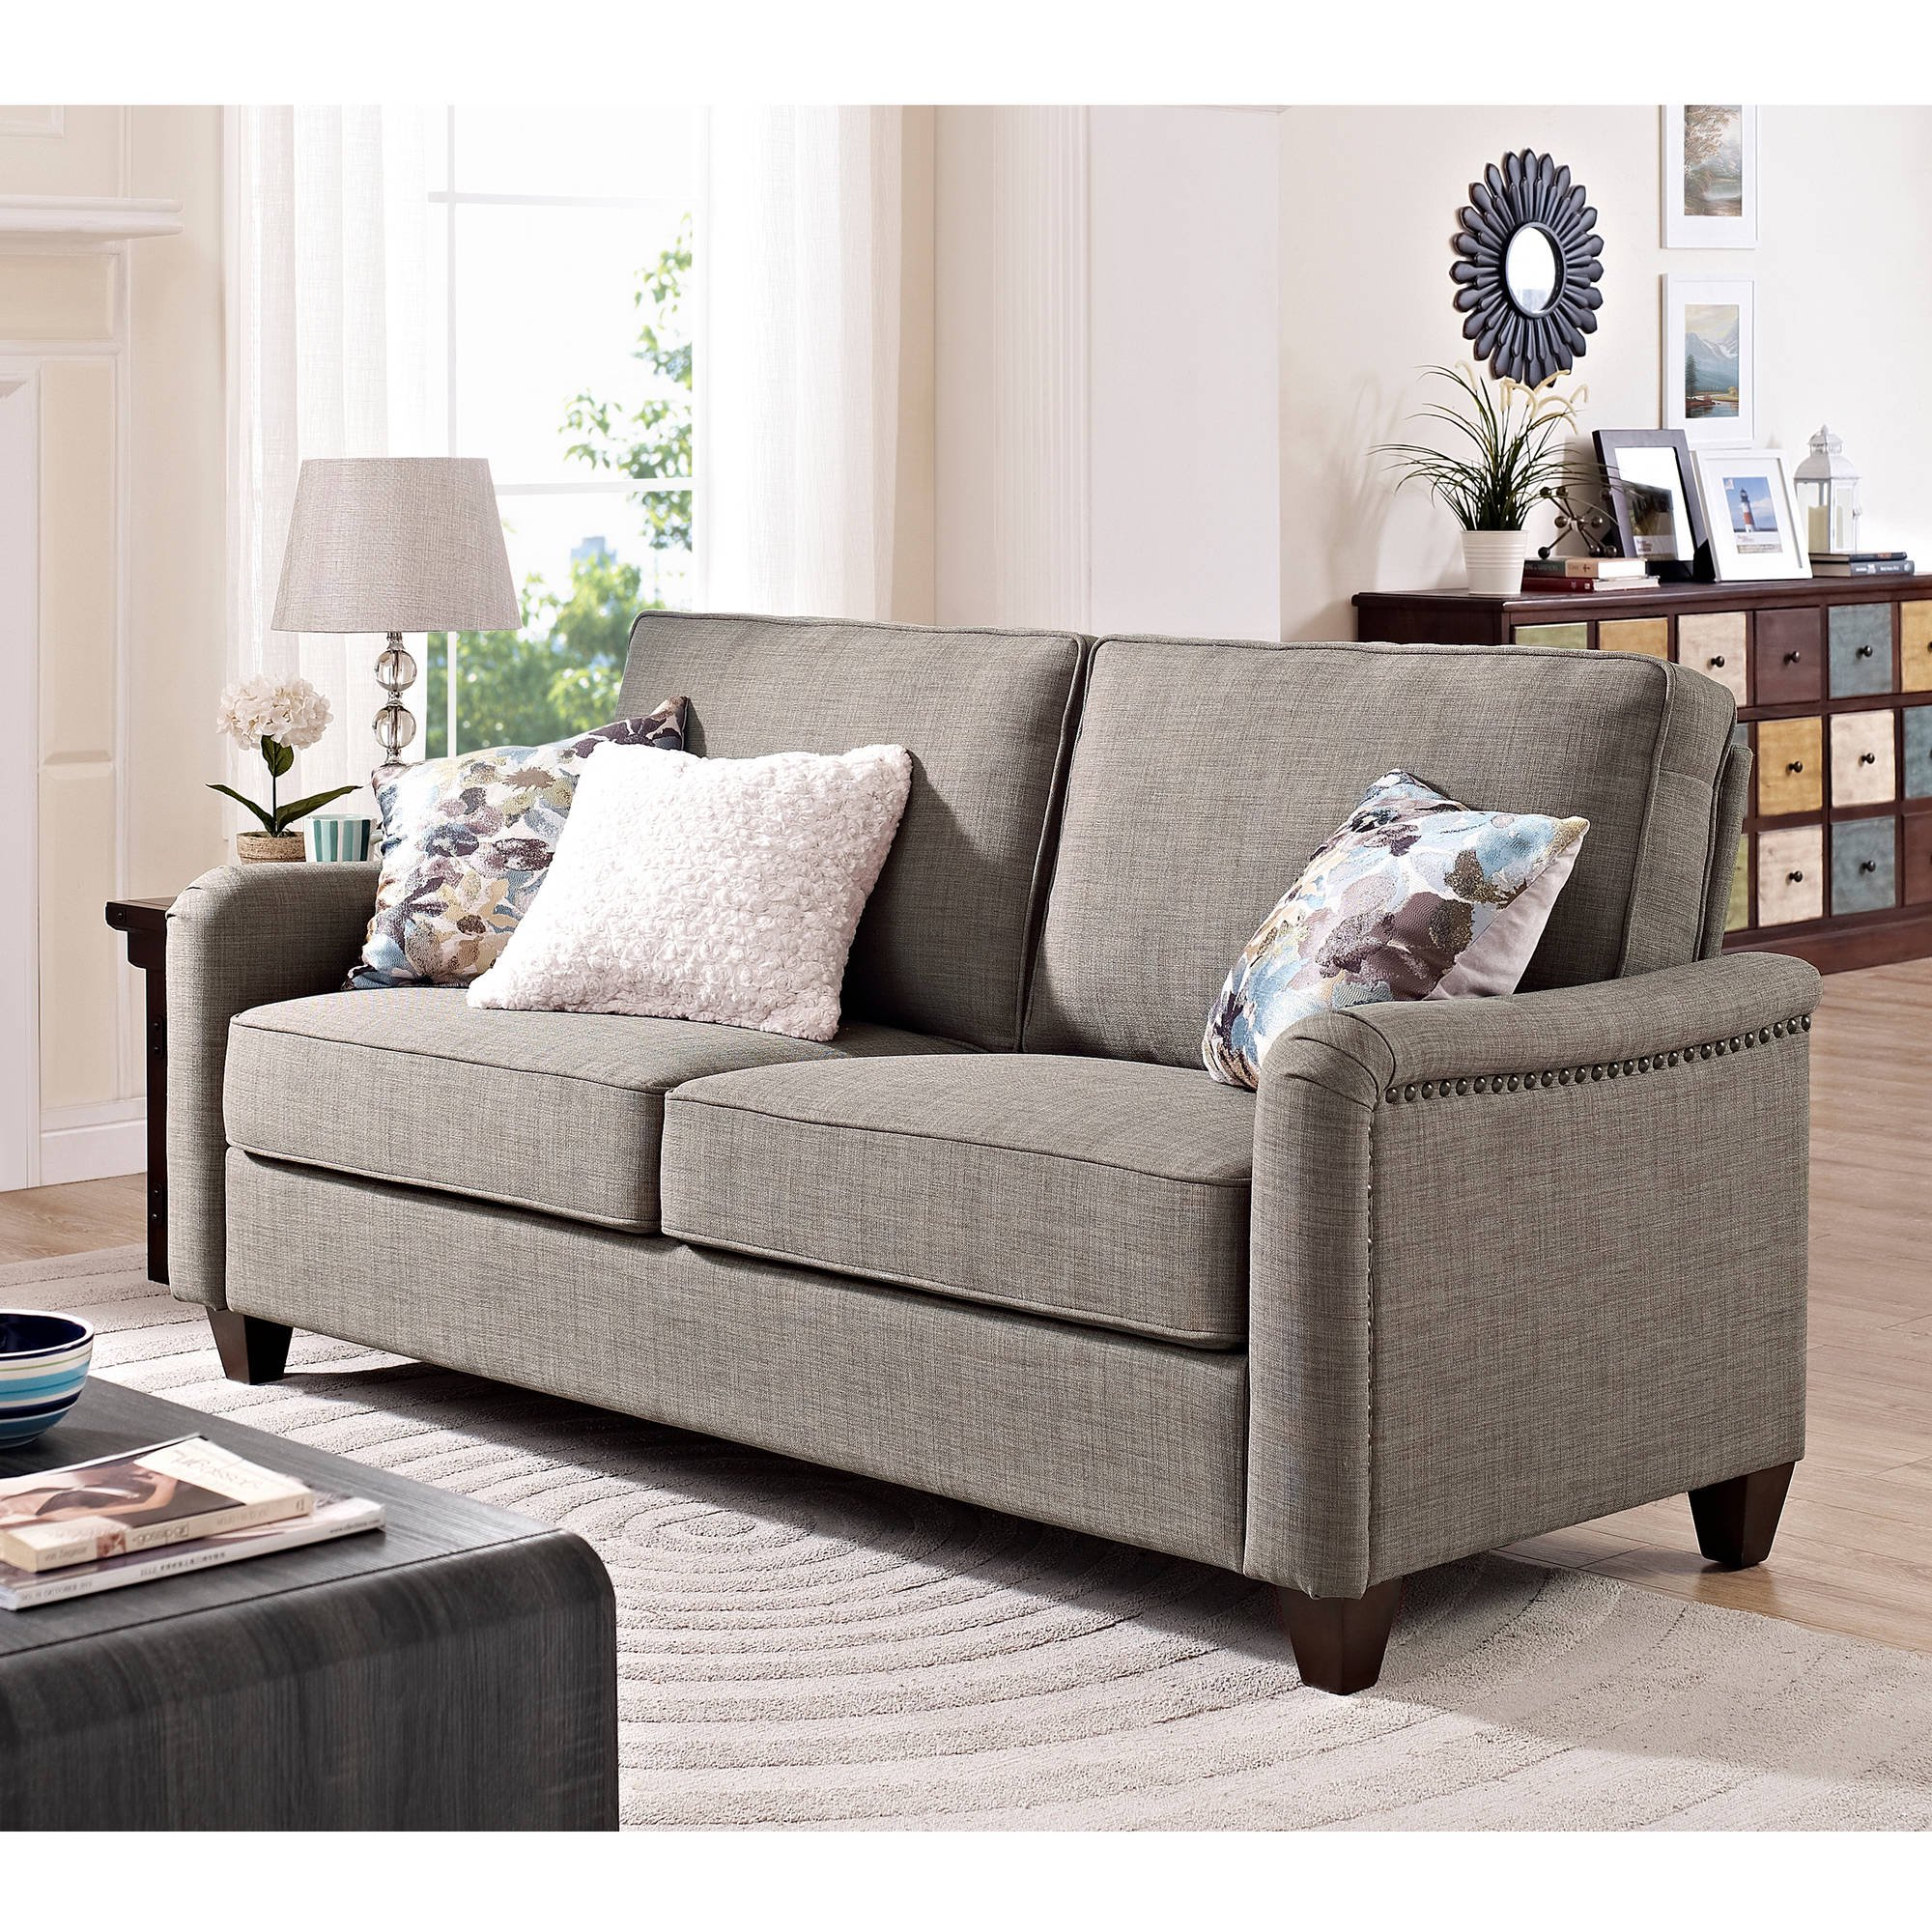 better homes and gardens grayson sofa with nailheads grey - Cheap Couches For Sale Under 100